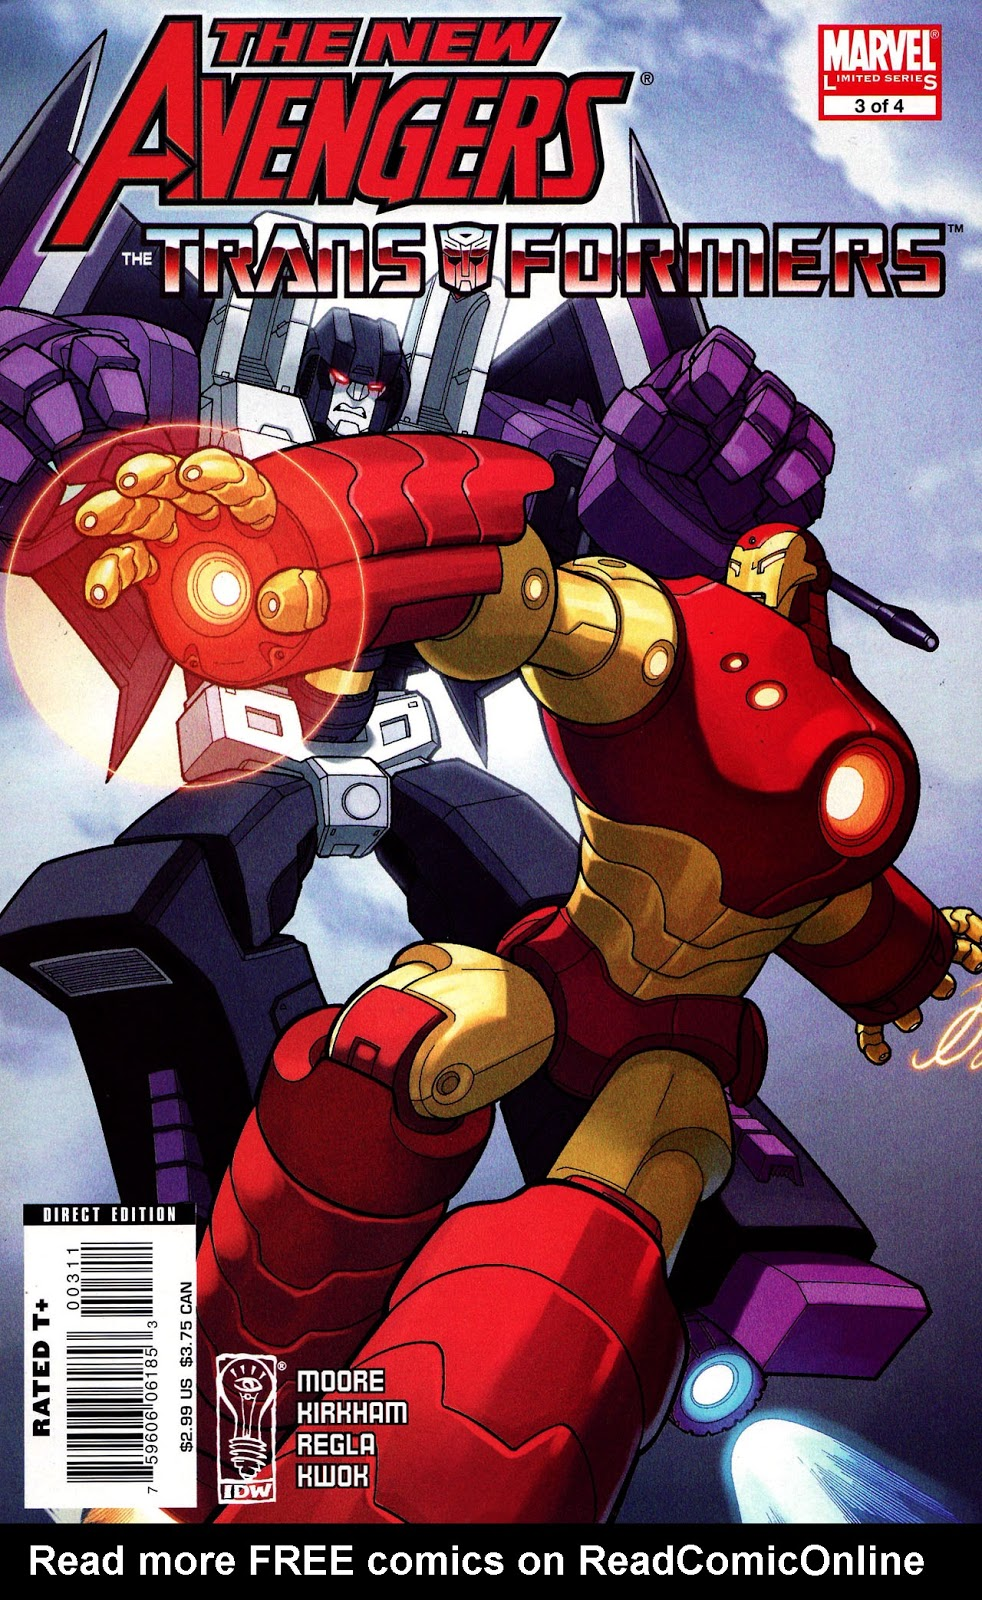 The New Avengers / Transformers #3 | Spider-Man Online